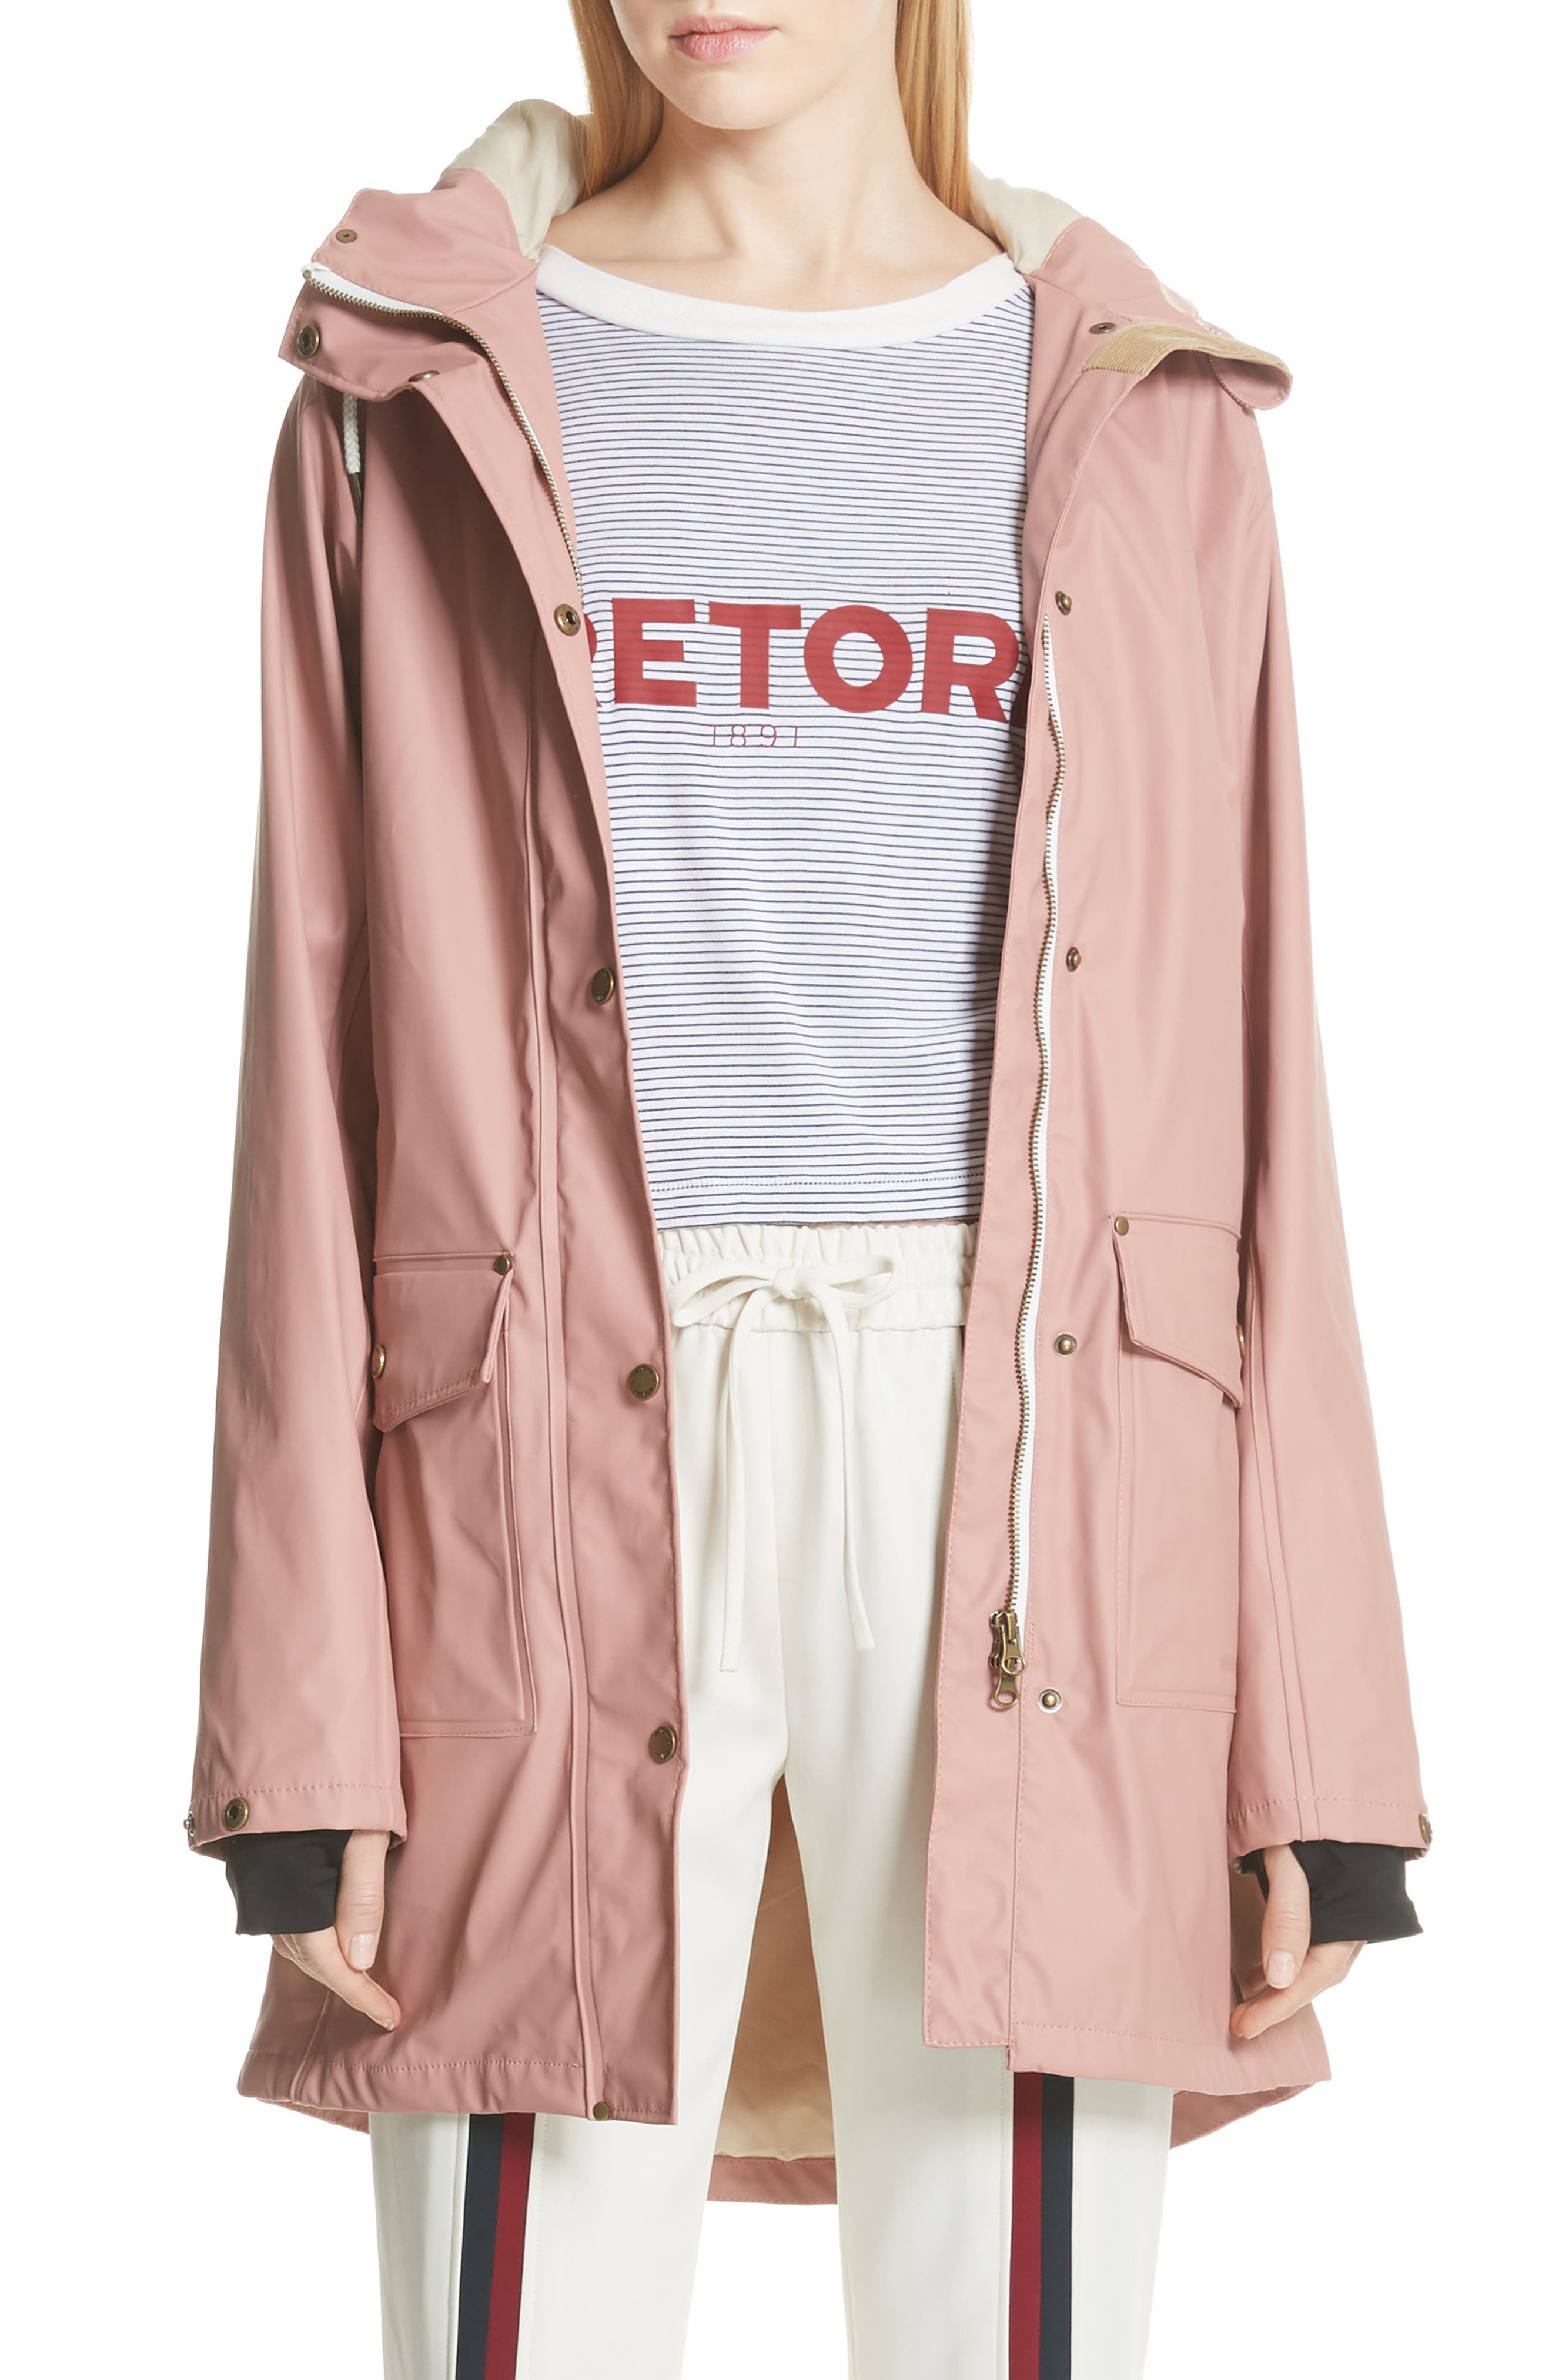 Tretorn Erna Raincoat (Nordstrom Exclusive)